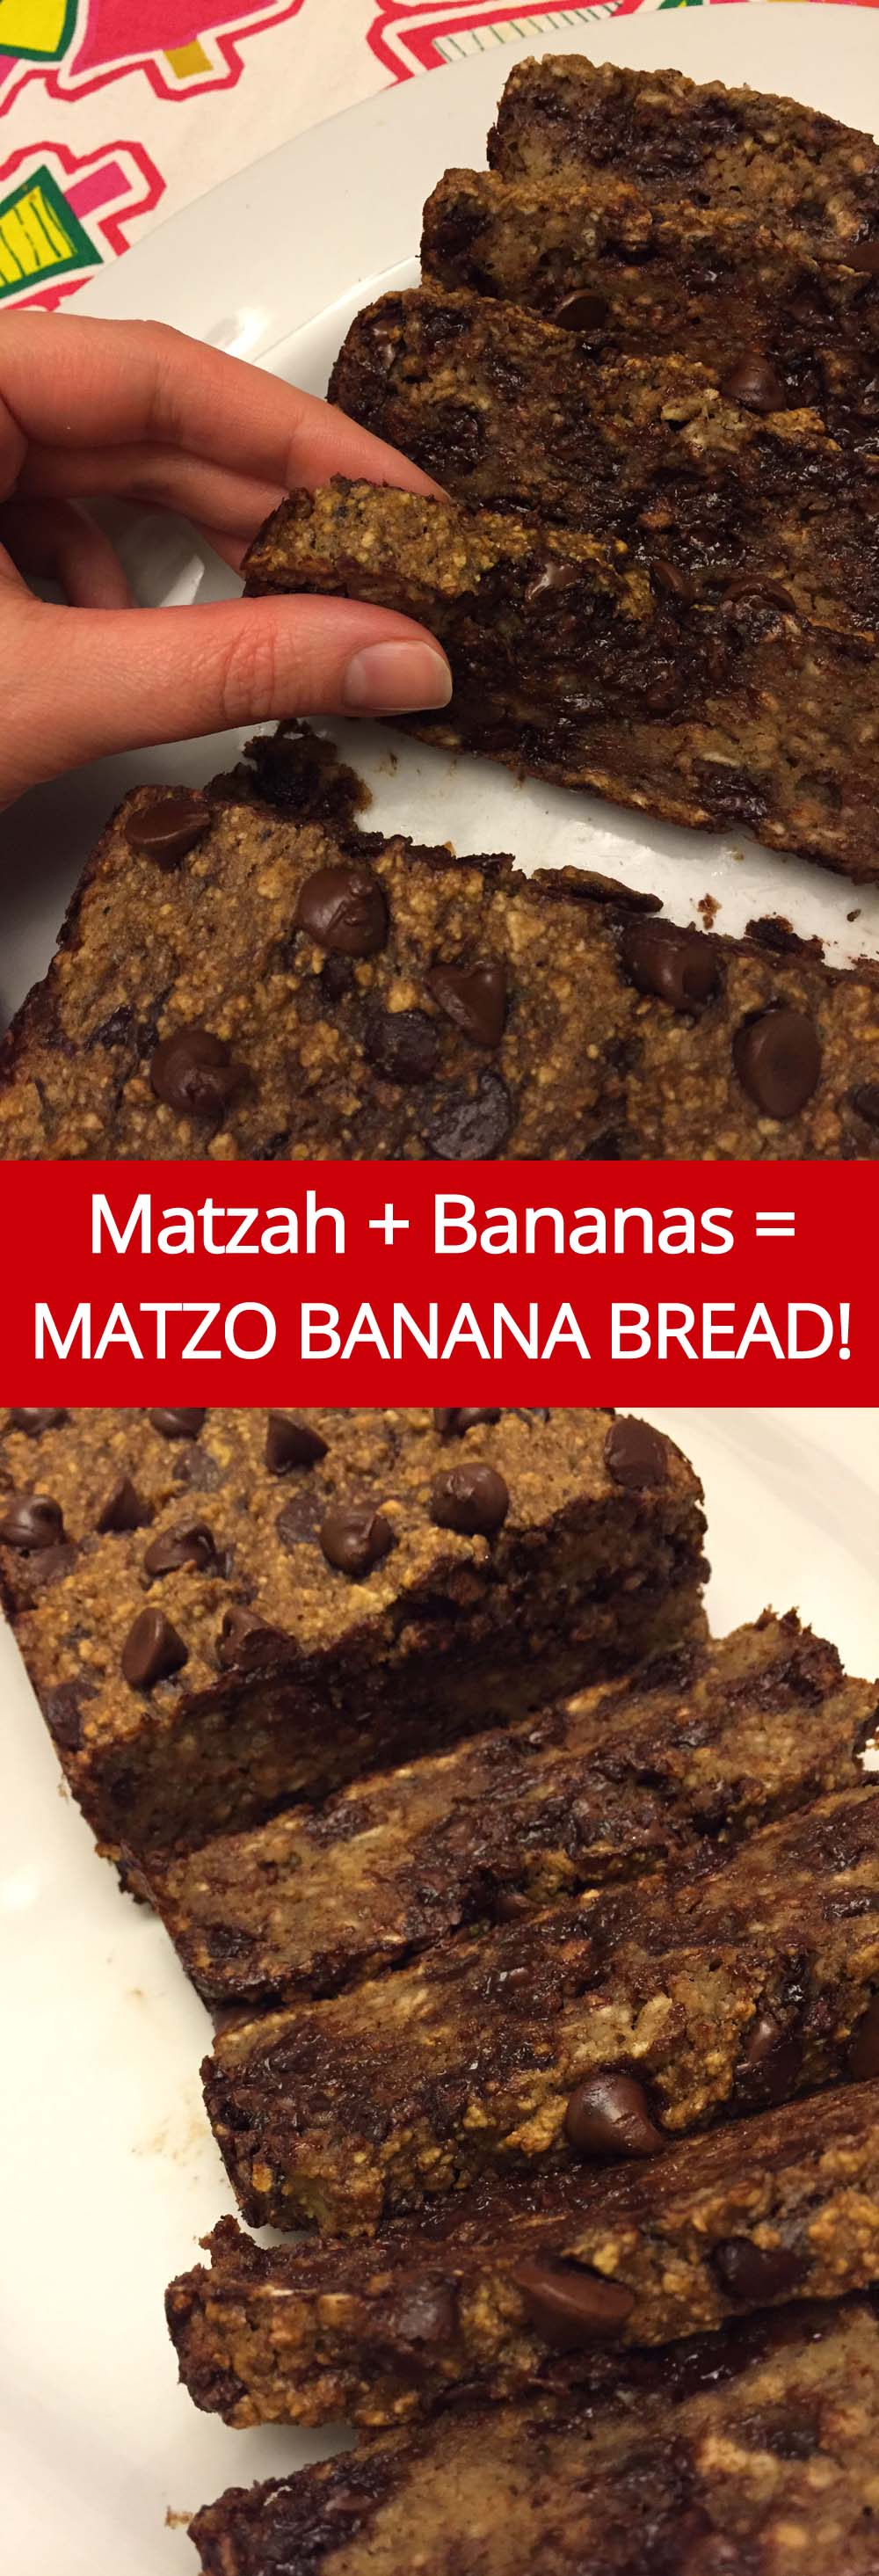 Matzo Meal Banana Bread Recipe from MelanieCooks.com - Perfect For Passover! #passover